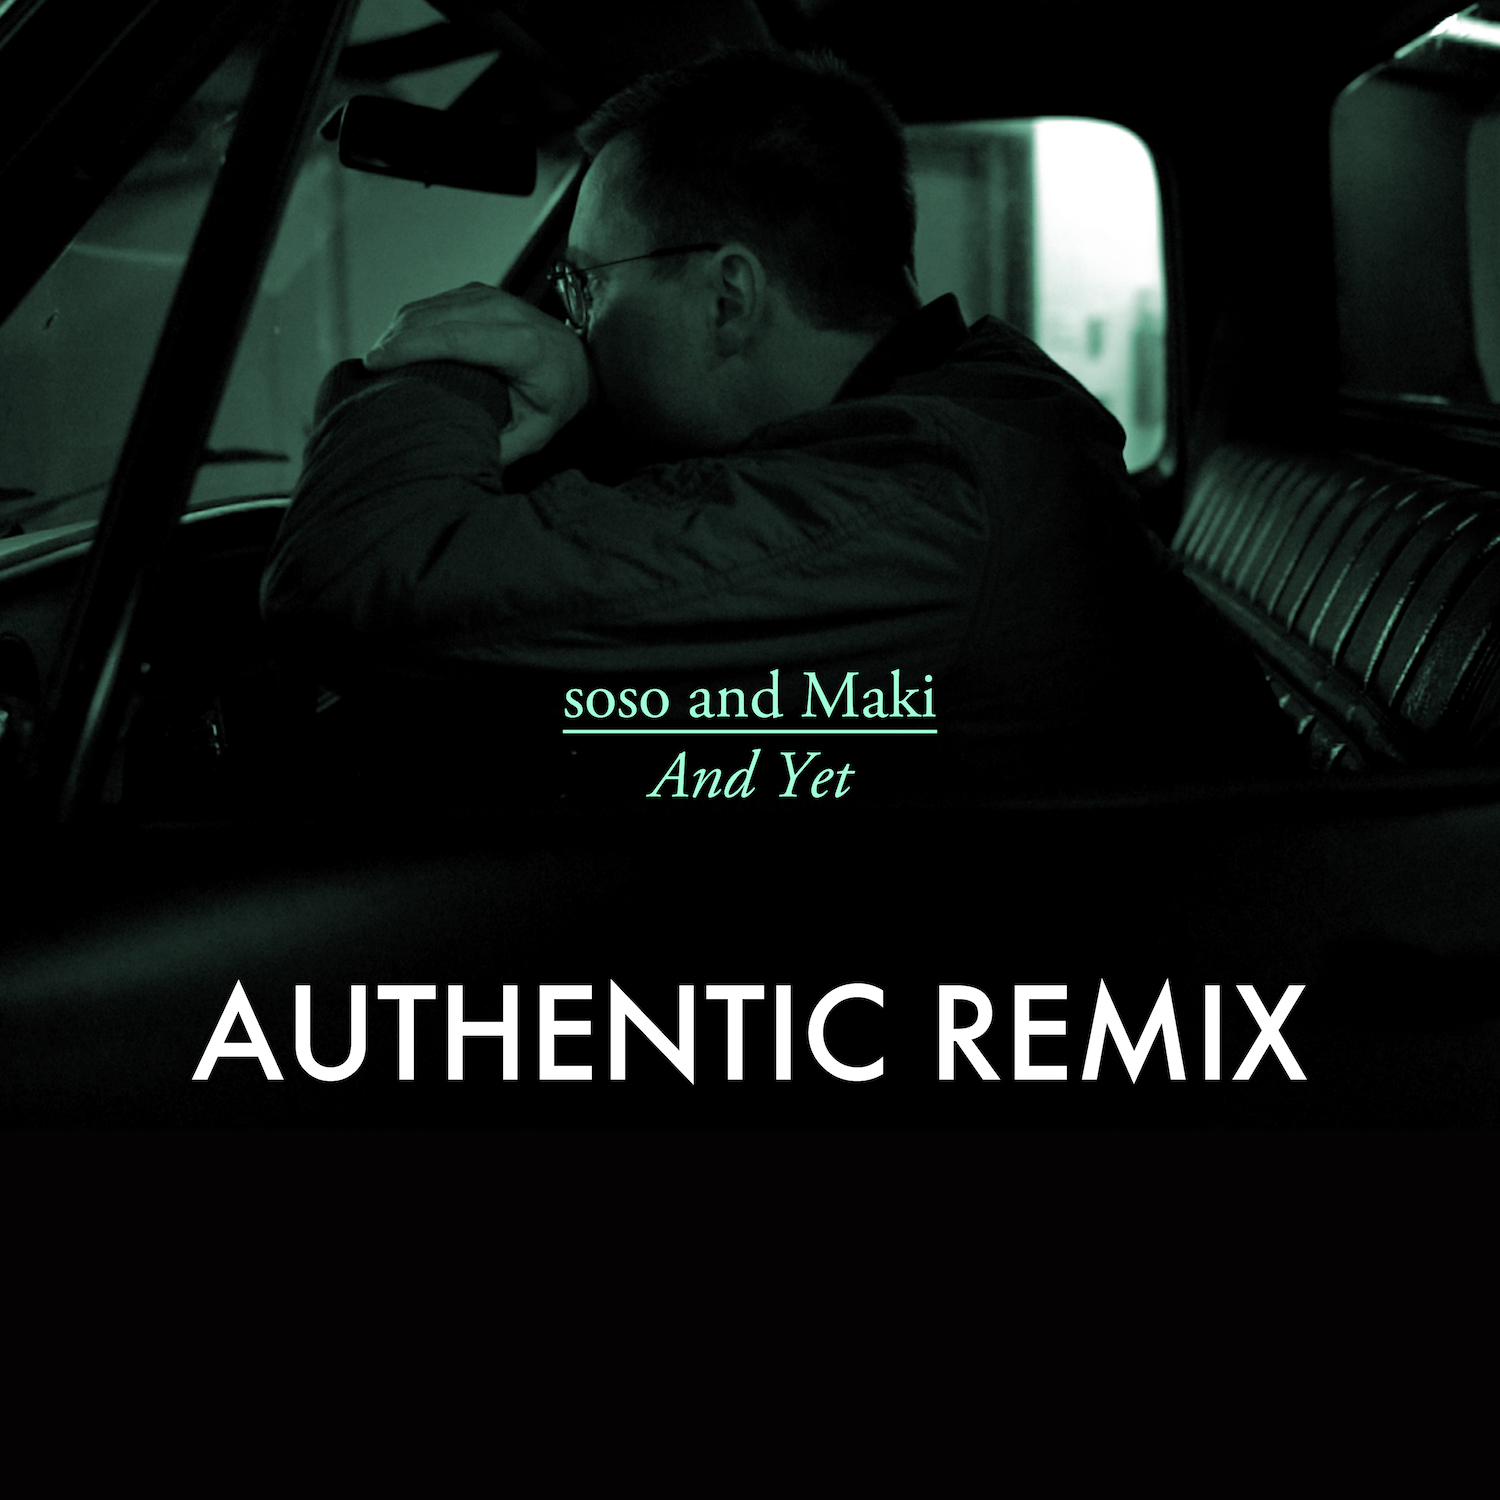 soso and Maki - And Yet - Authentic Remix